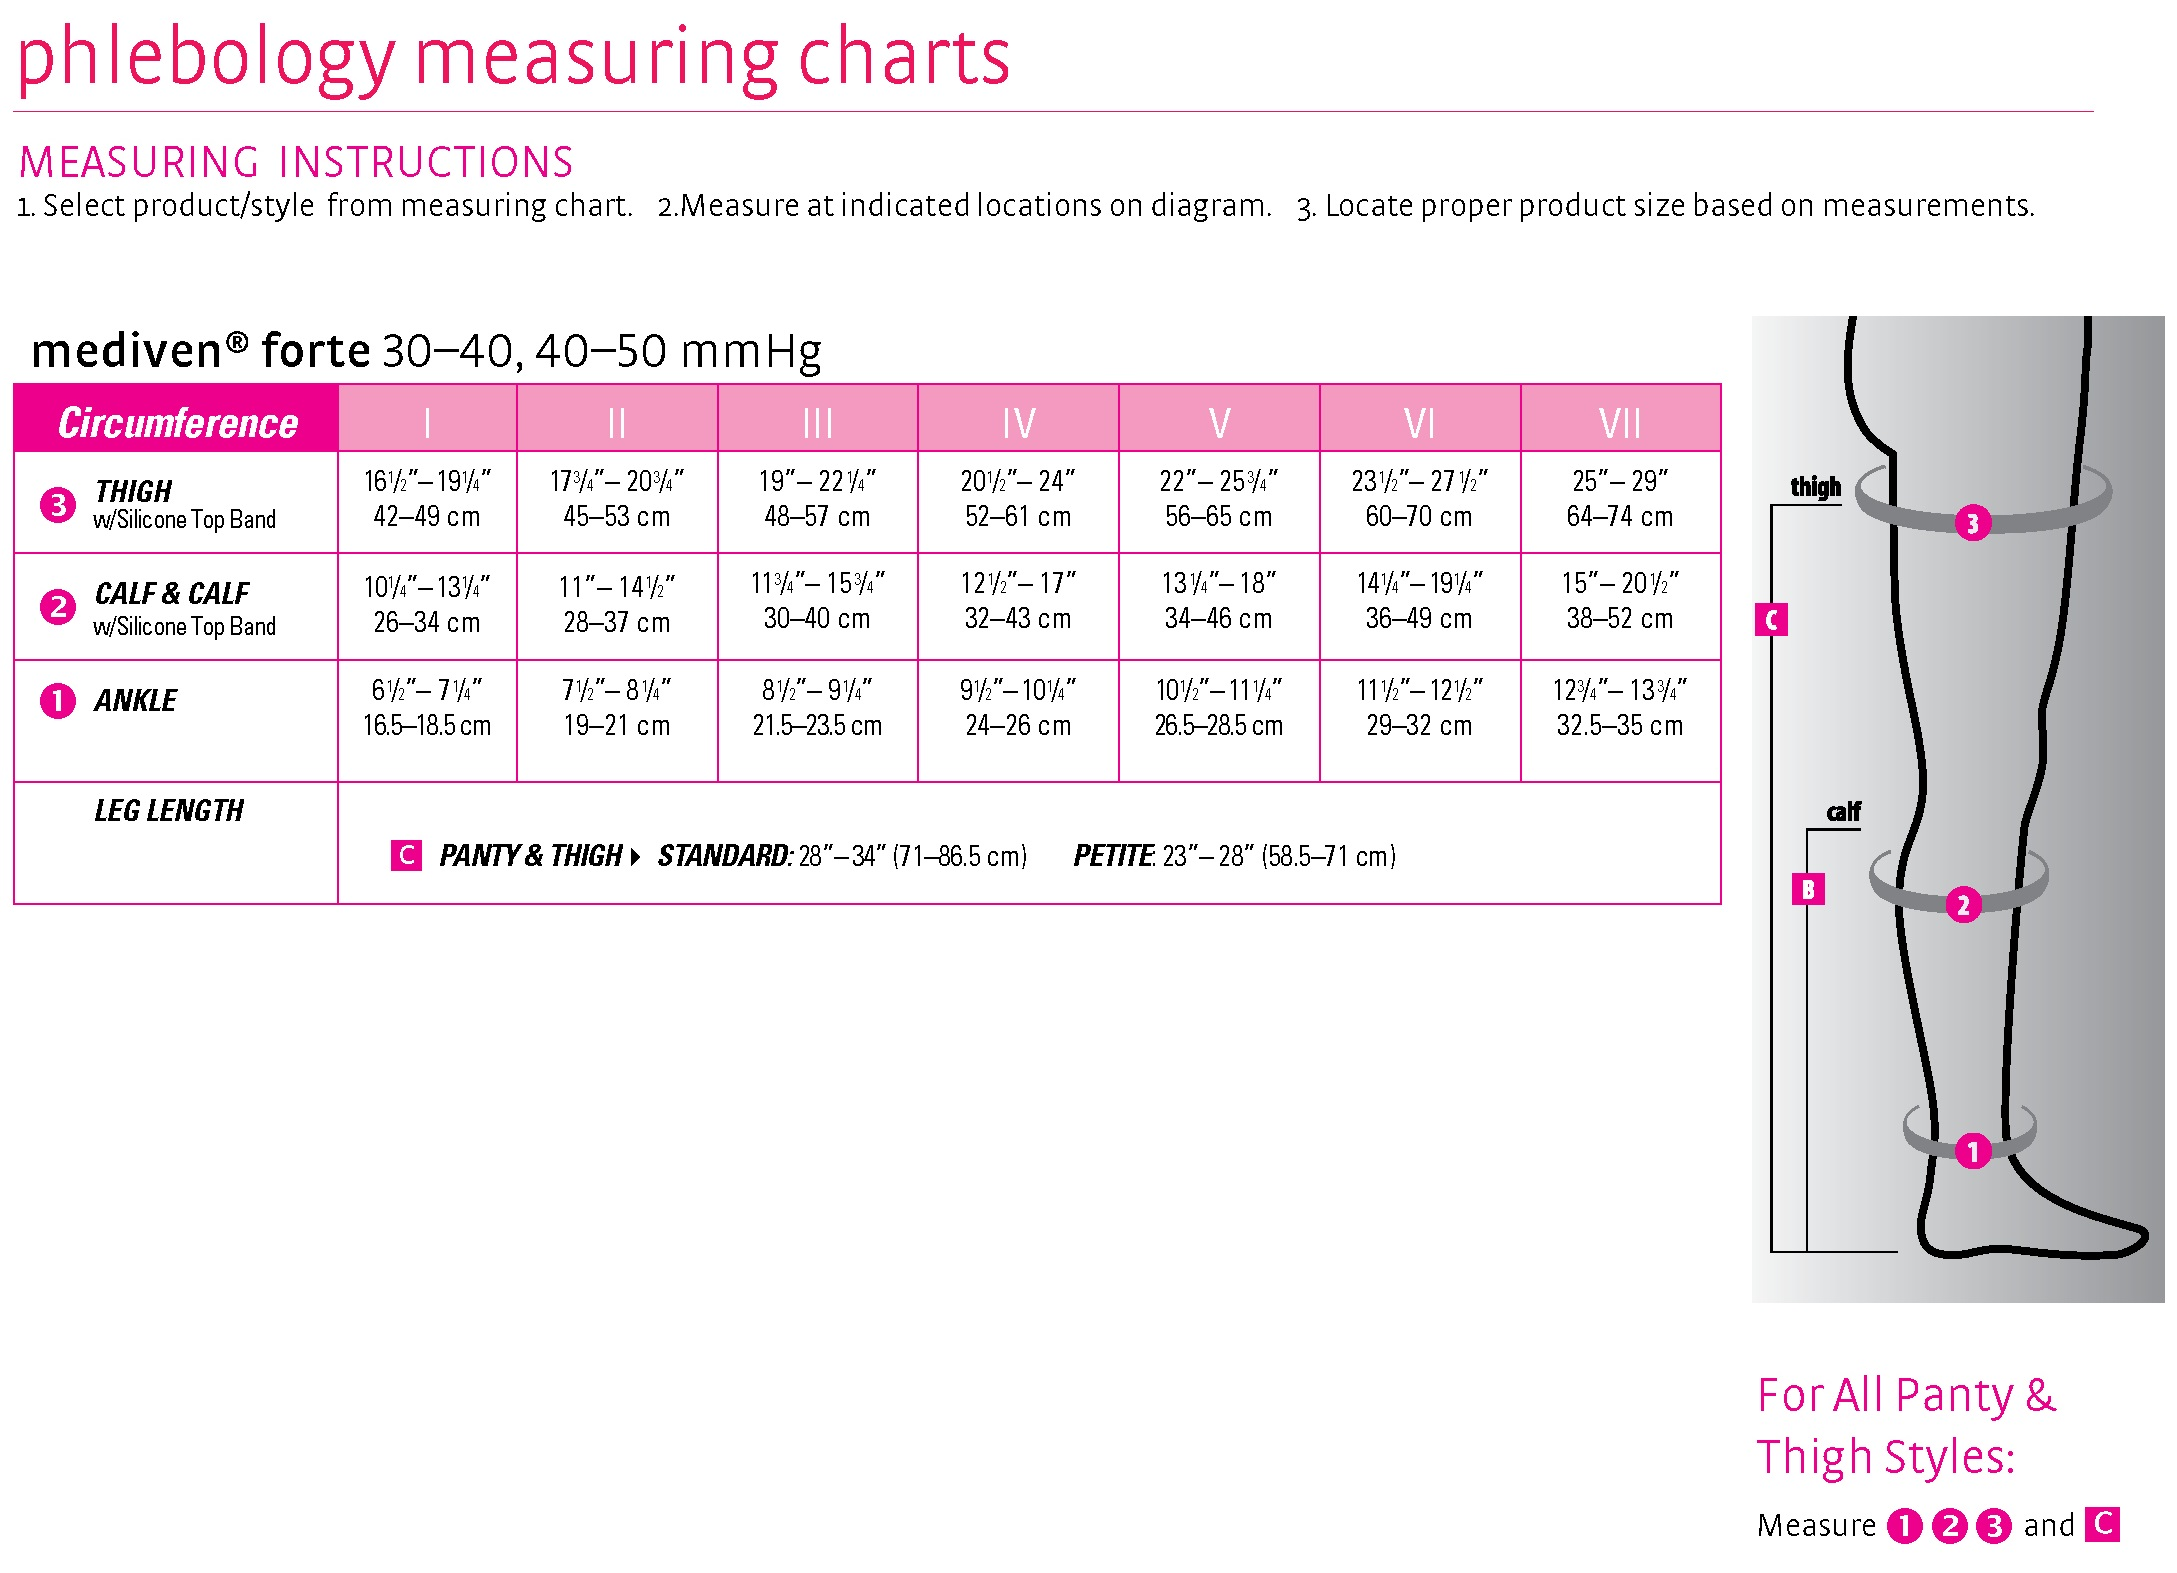 8db0b3a79472b For All Panty & Thigh Styles: Measure 1, 2, 3 & C. Videos: Mediven Forte 40-50  mmHg Open Toe Thigh Highs ...